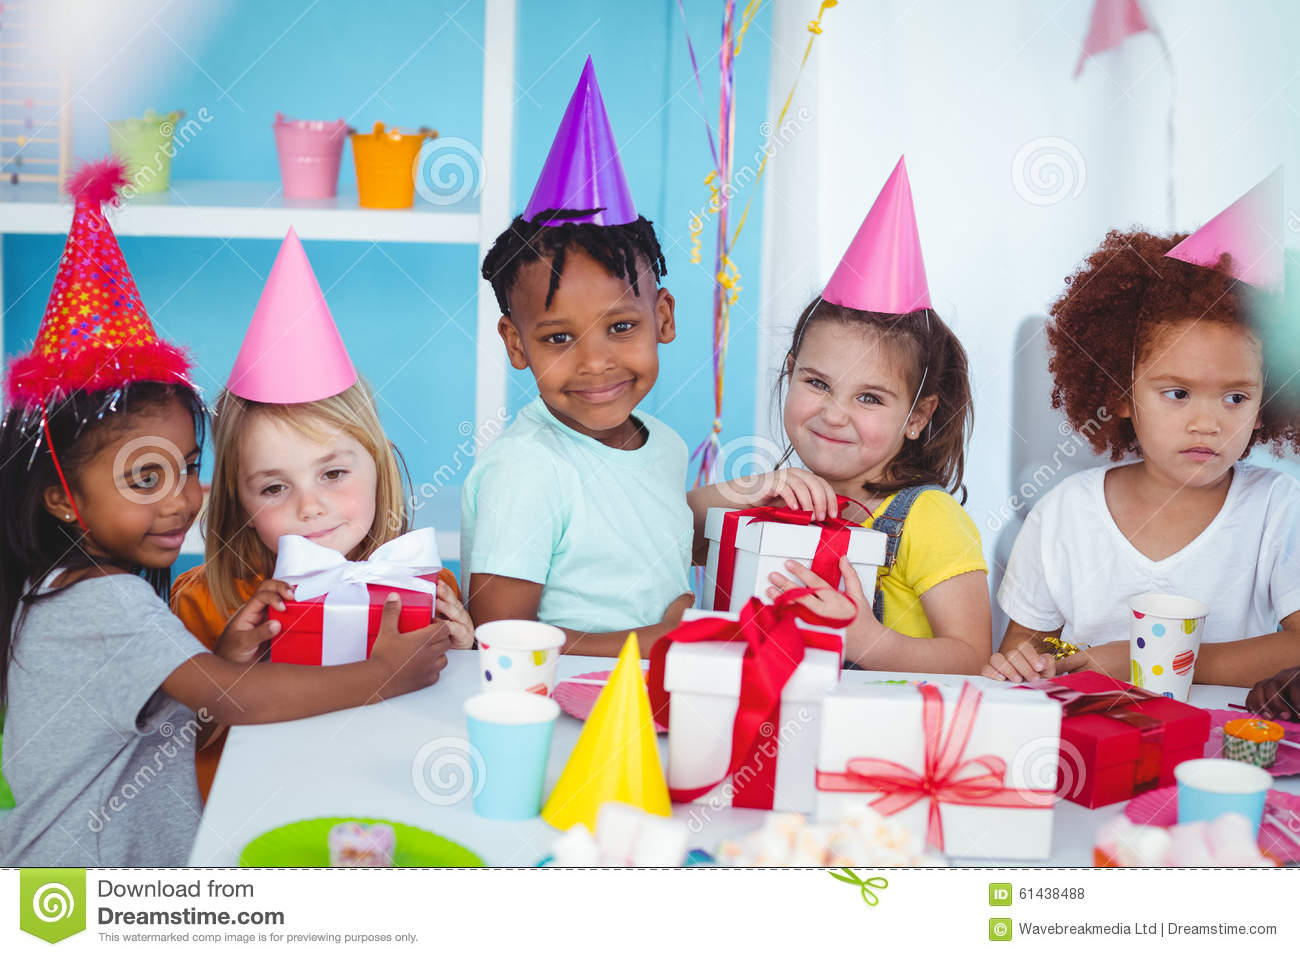 Forum on this topic: How to Entertain Kids at Birthday Parties, how-to-entertain-kids-at-birthday-parties/